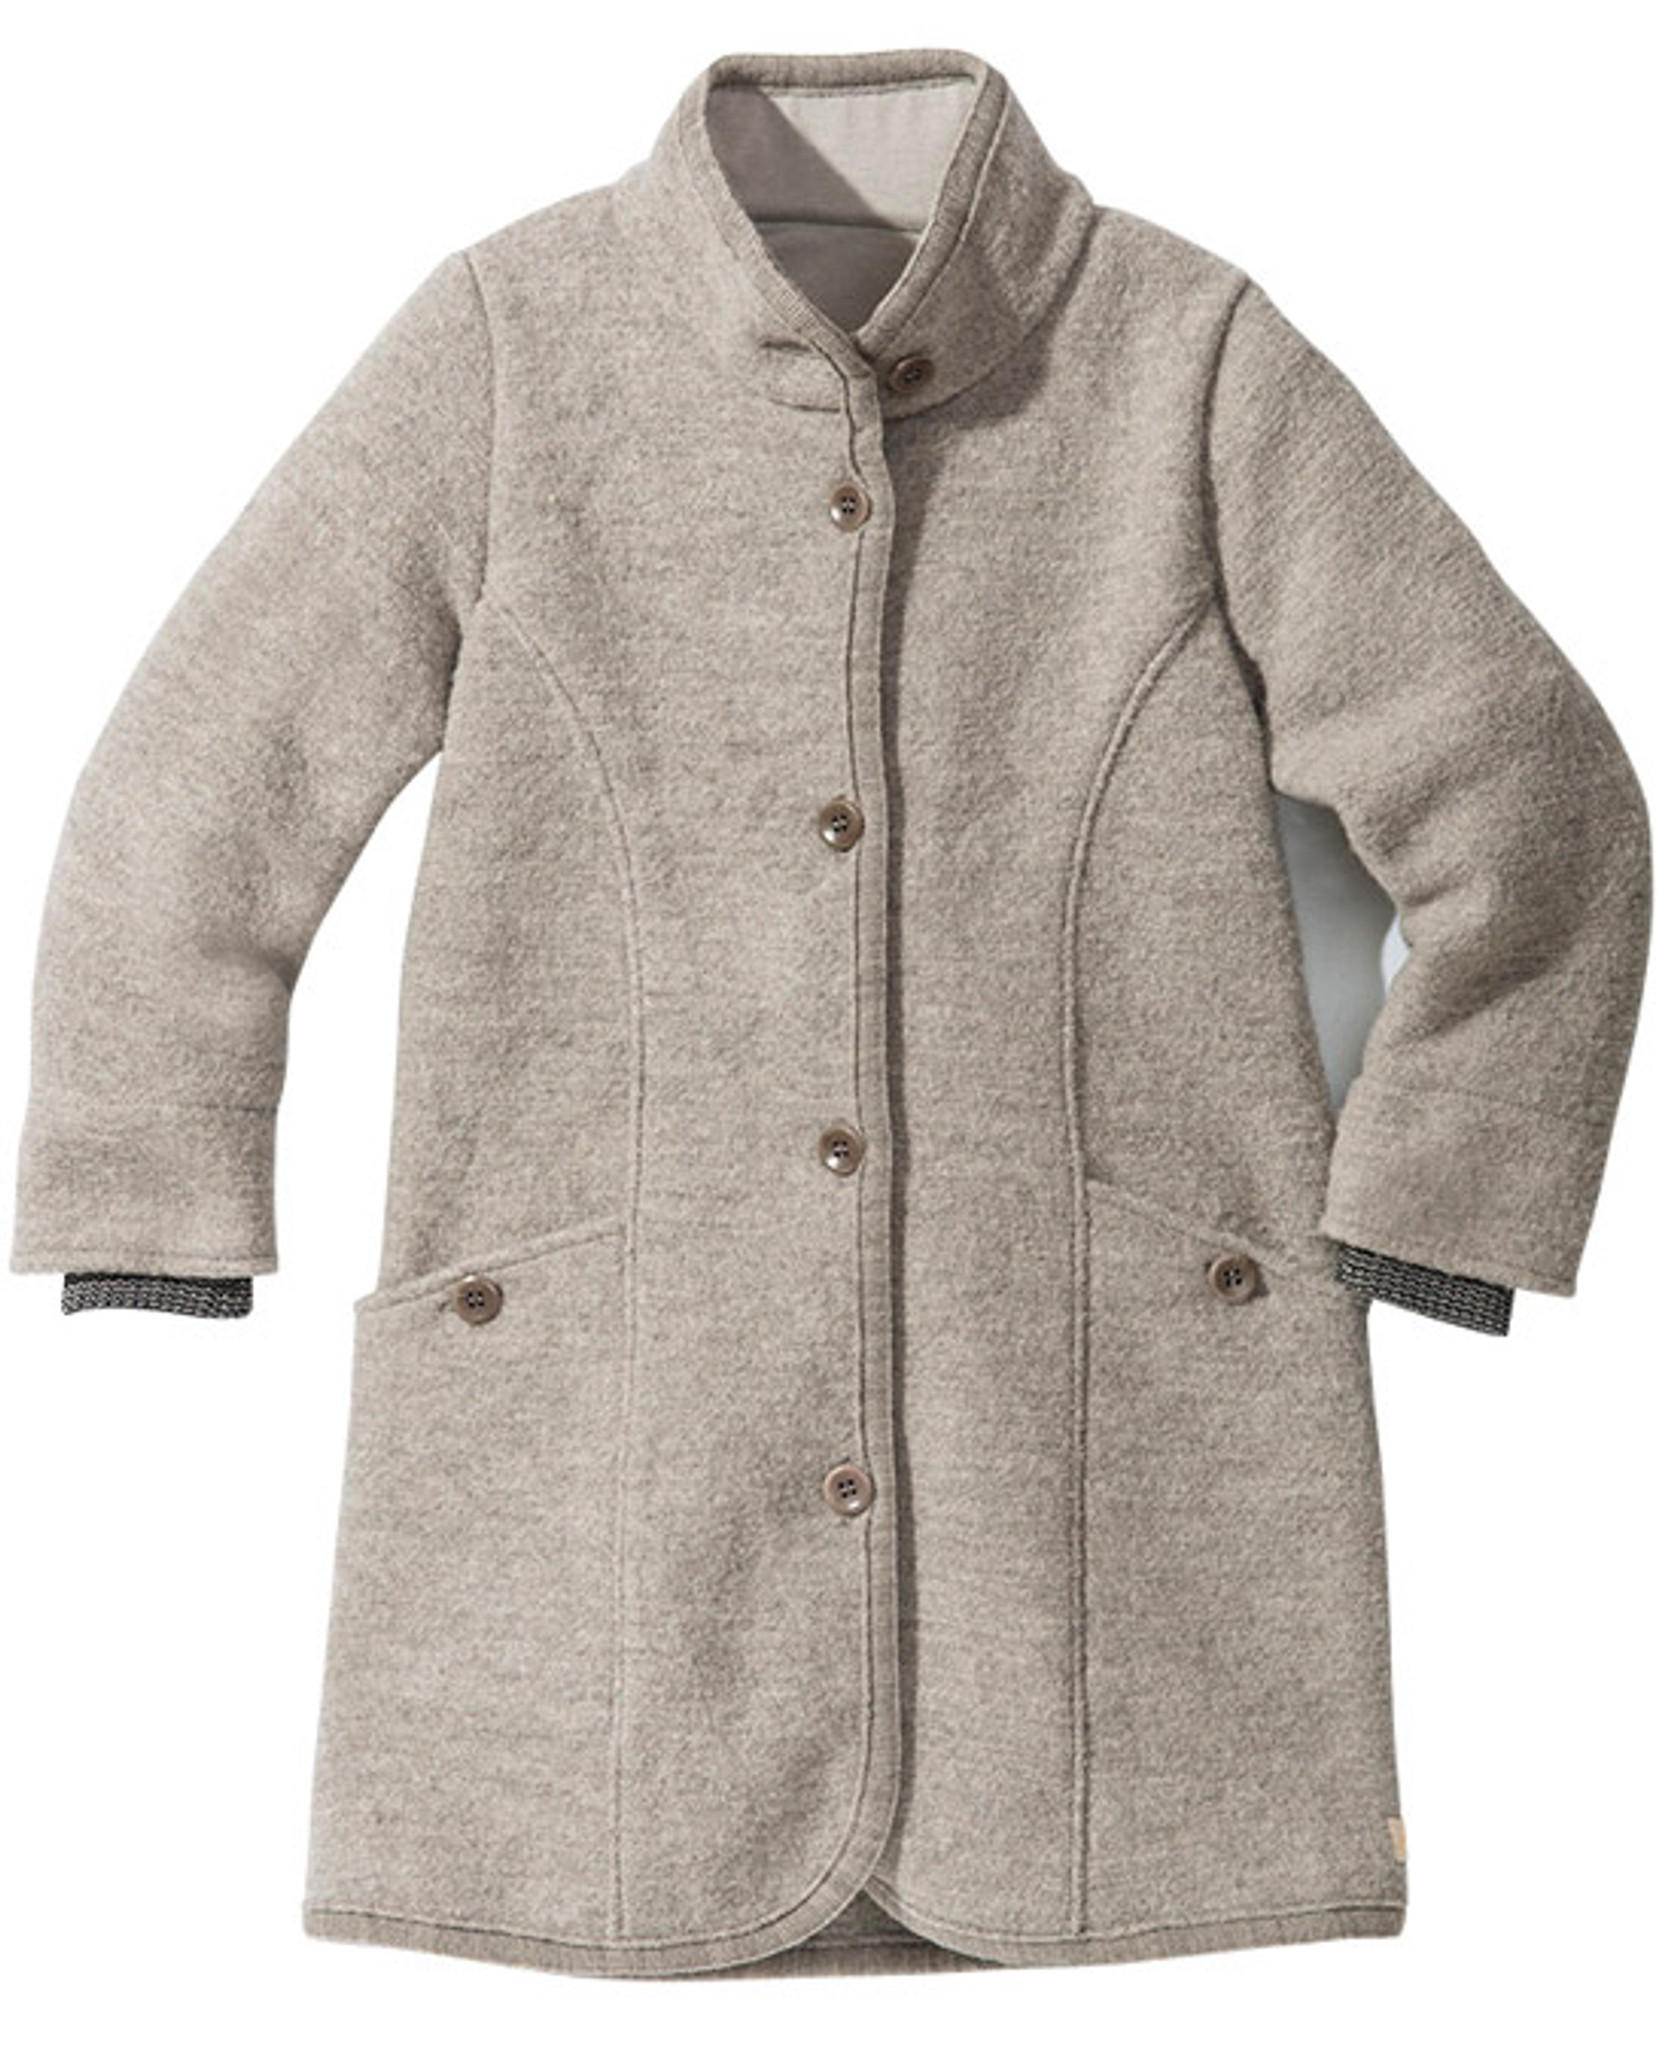 hot-selling discount popular brand latest releases Disana Organic Boiled Wool Children's Coat - Little Spruce ...